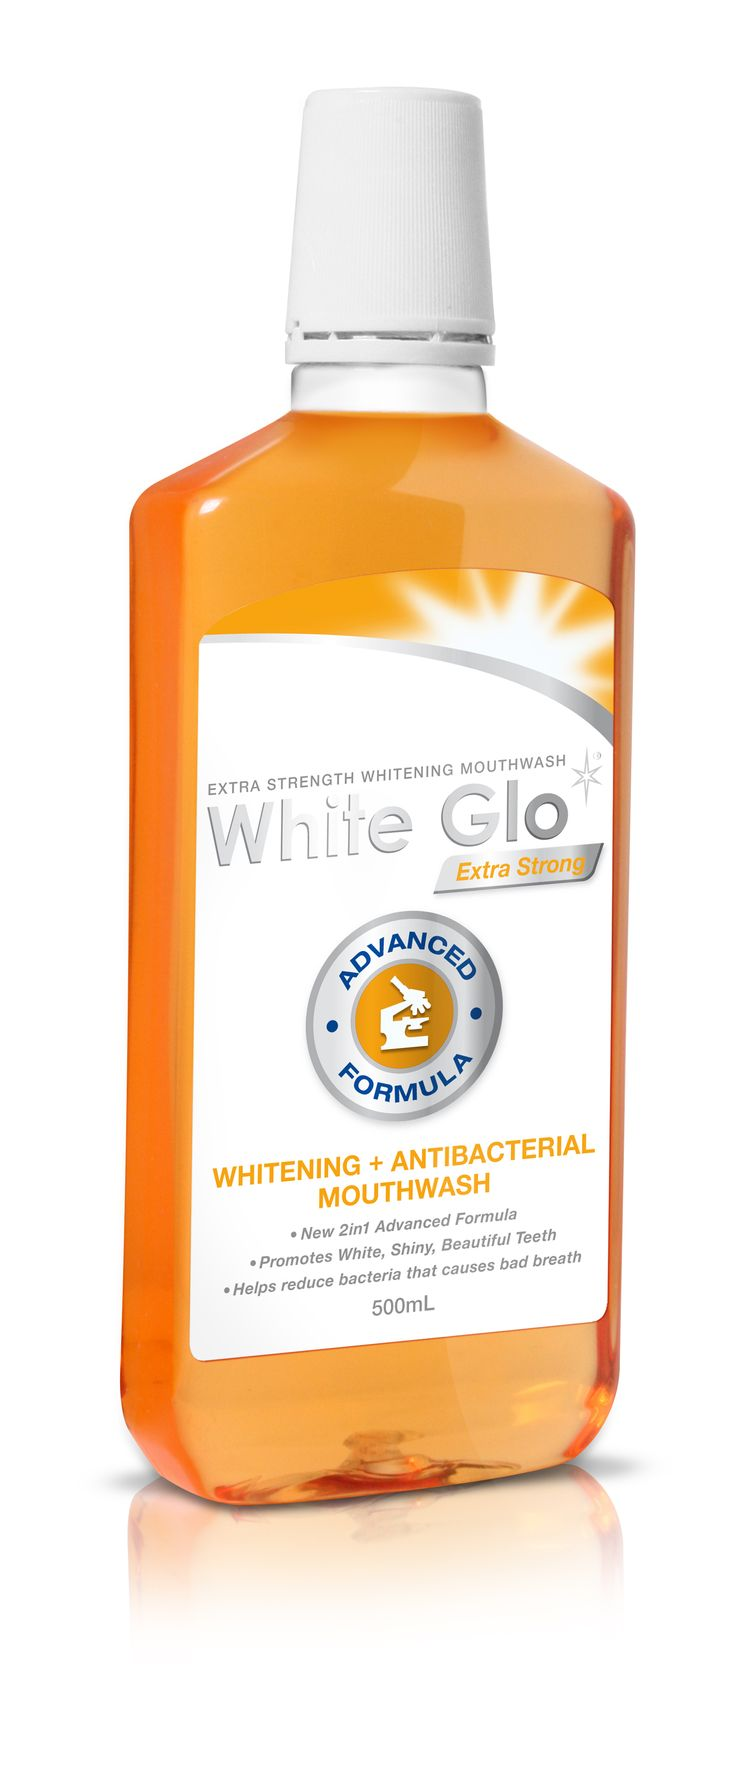 13 Best White Glo Products Images On Pinterest Beauty